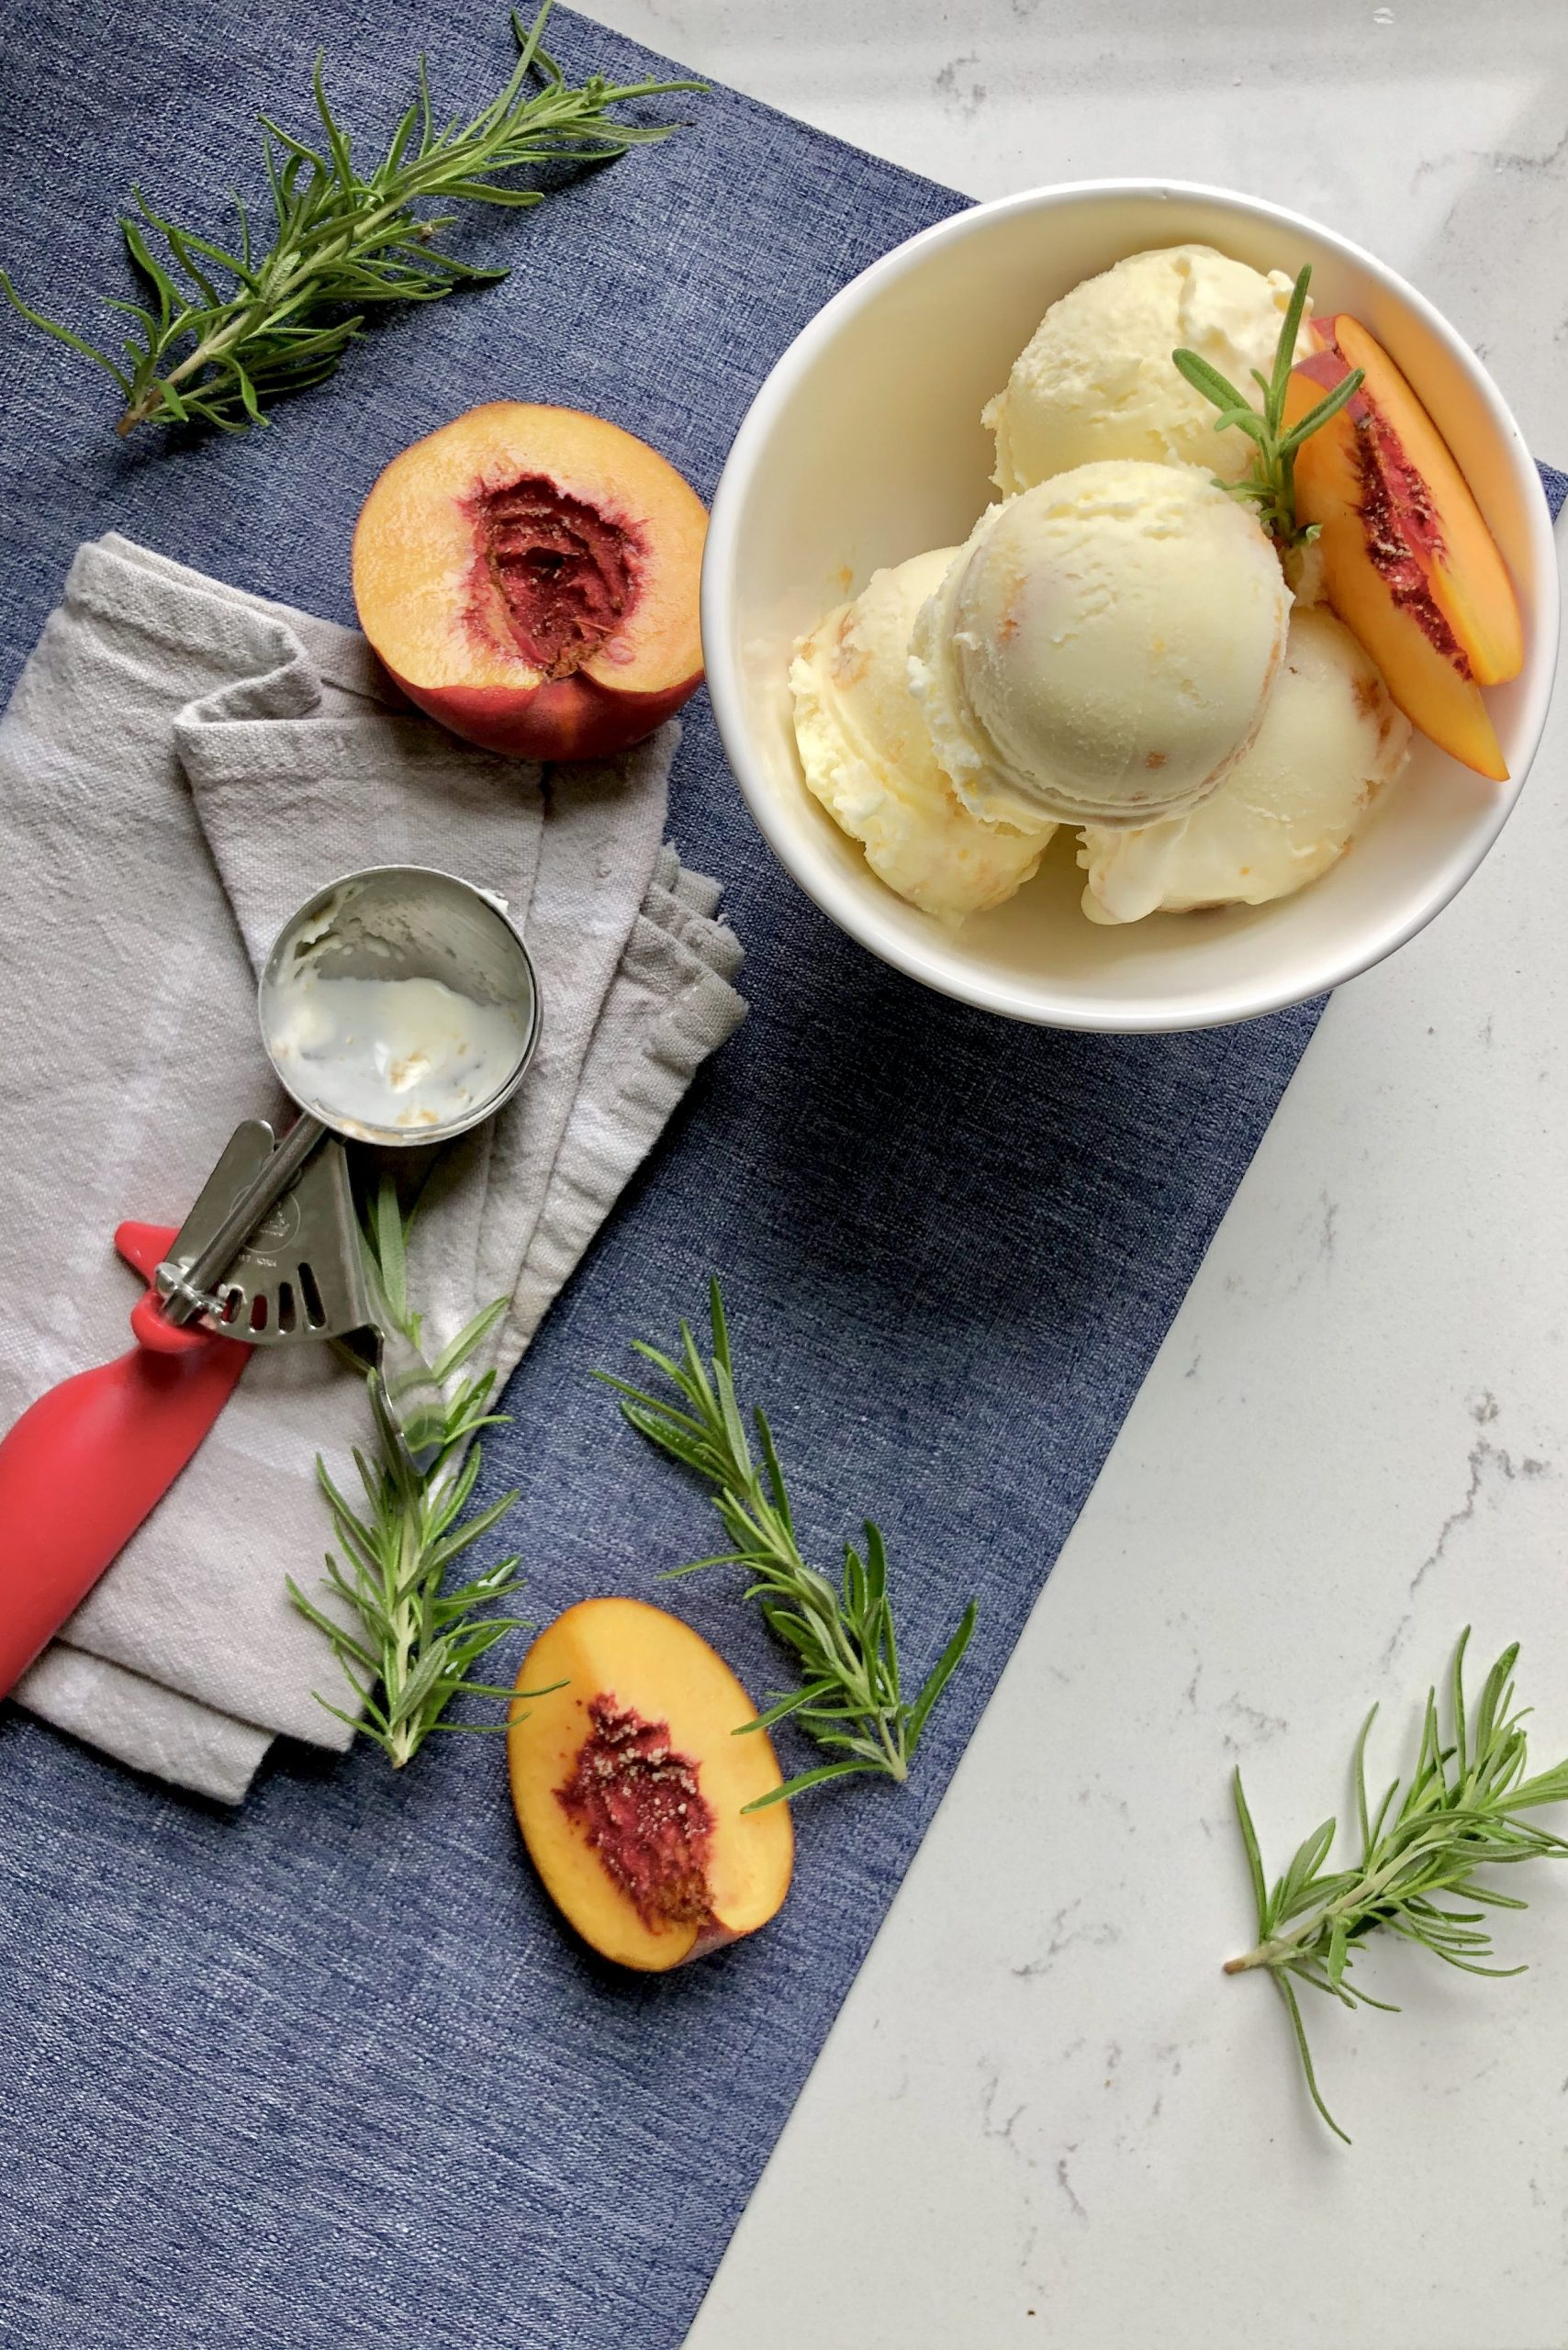 A scene of a few scoops of the roasted peach and rosemary ice cream in a bowl with some peaches and an ice cream scooper.